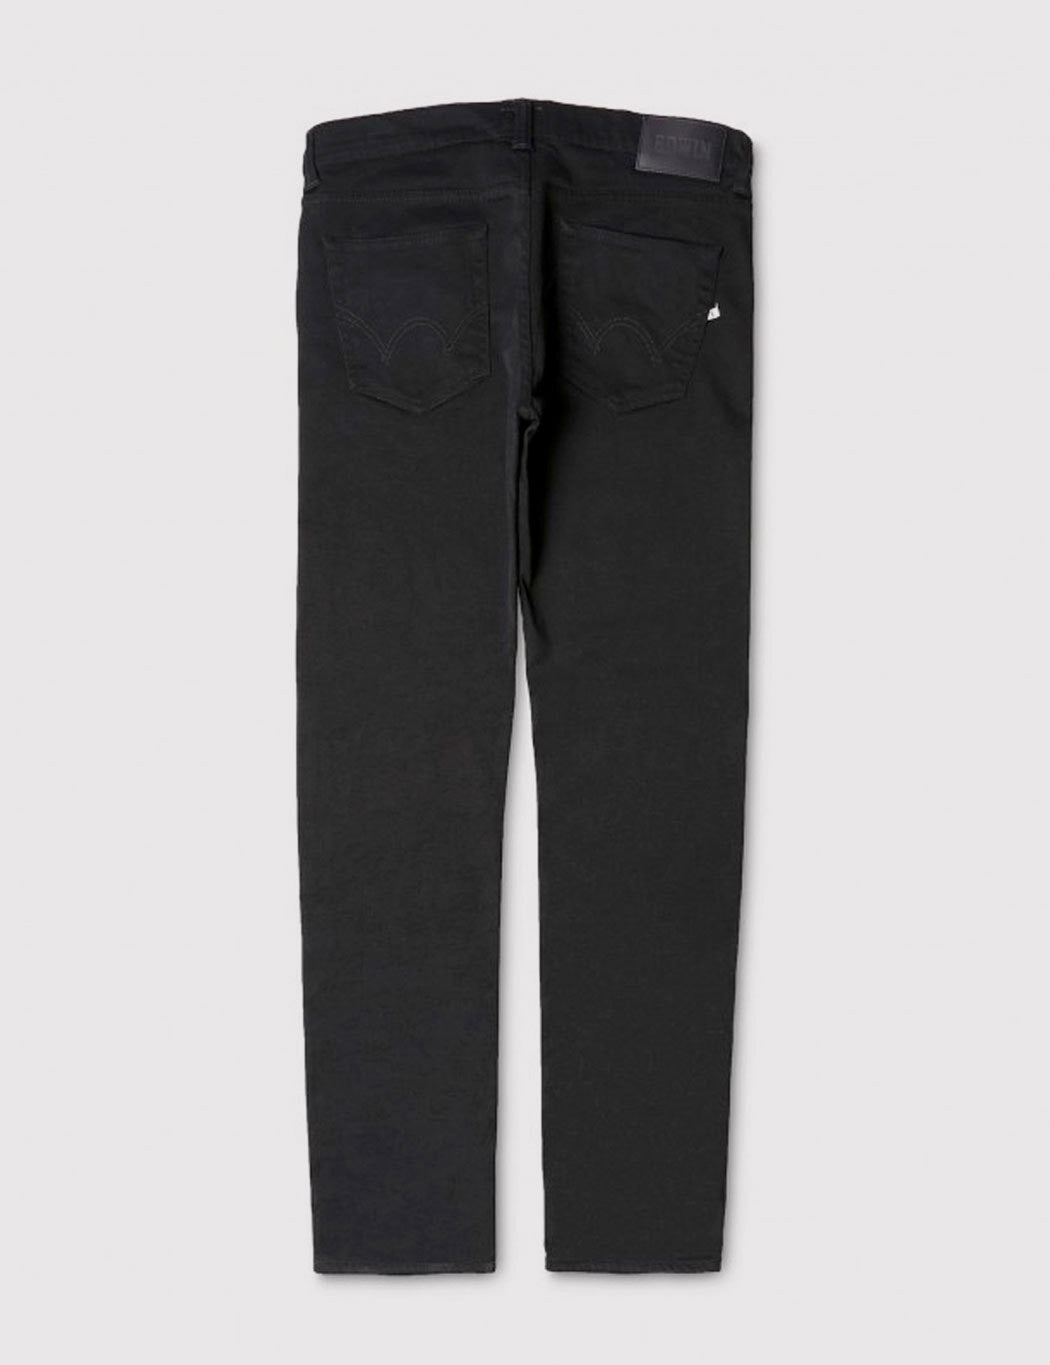 Edwin ED-80 CS Ink Black 11oz Jeans (Slim Tapered) - Black Wash